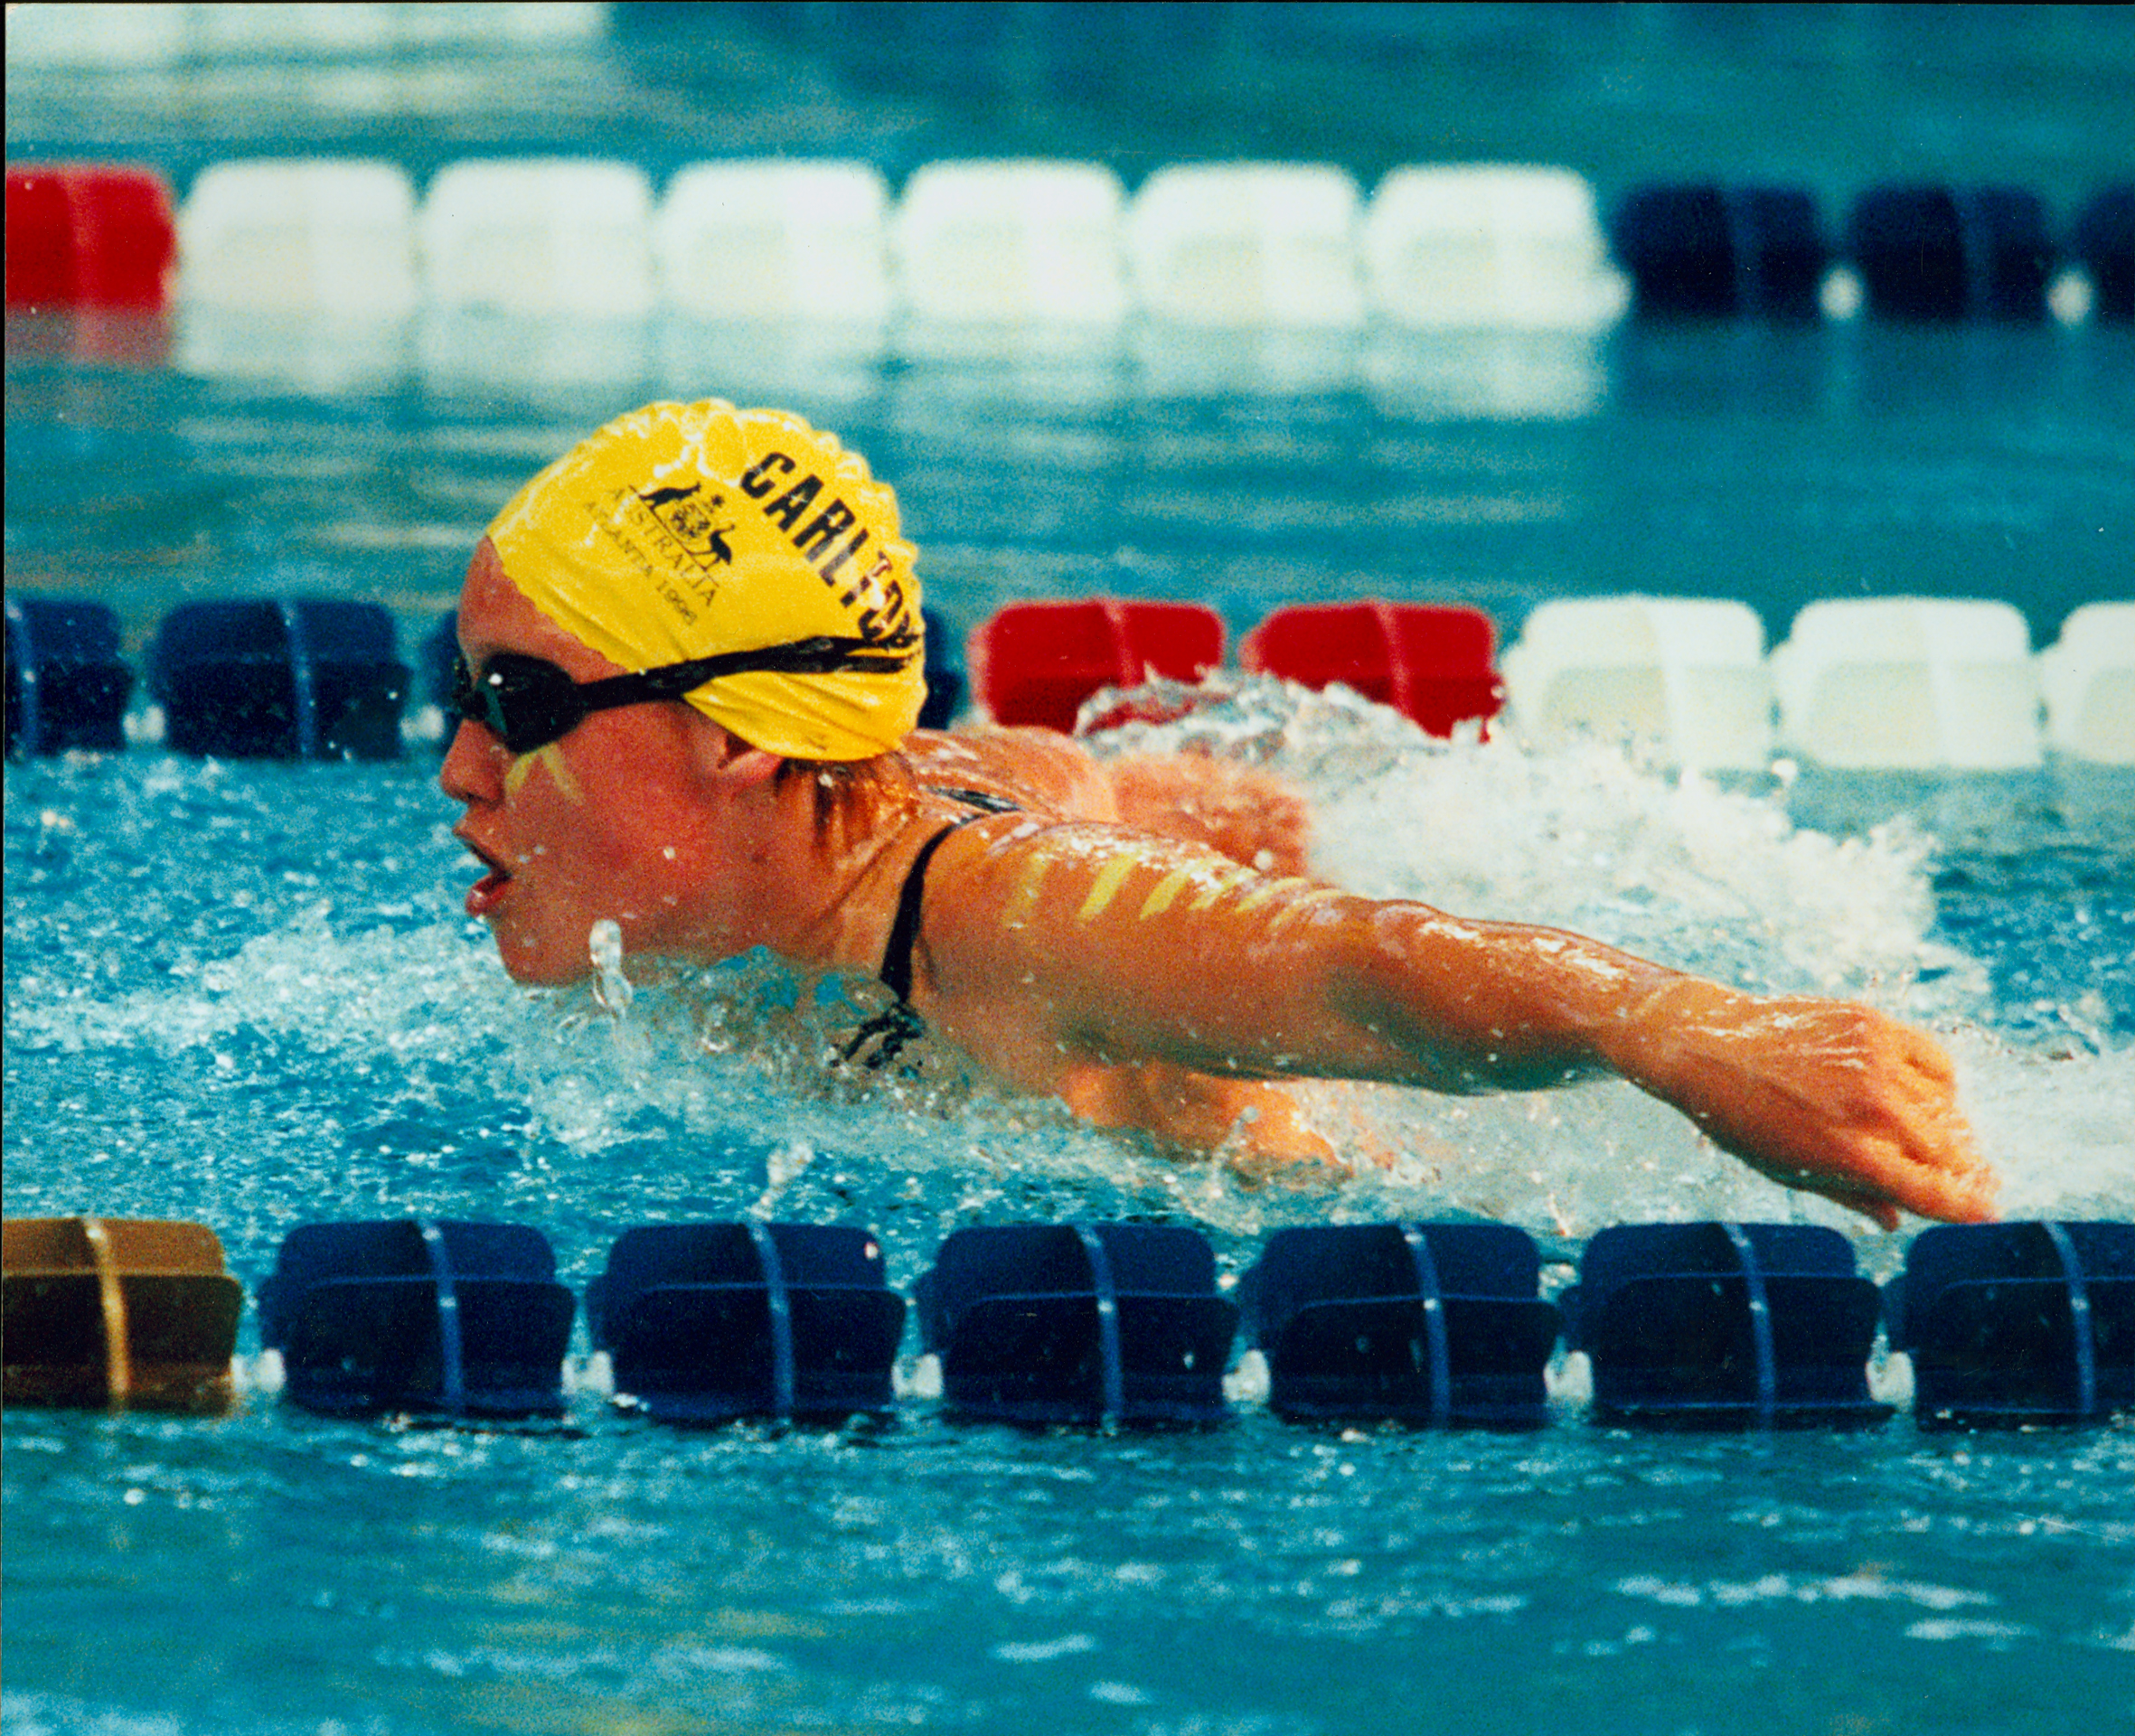 advantages of dating a swimmer Swimmers are a dedicated, crazy bunch whether you have gone down the path of dating an athlete before or not, it's impossible to ignore that swimmers are a little different they have the perks of being an athlete without the big head that comes from a pursuit of fame or riches.